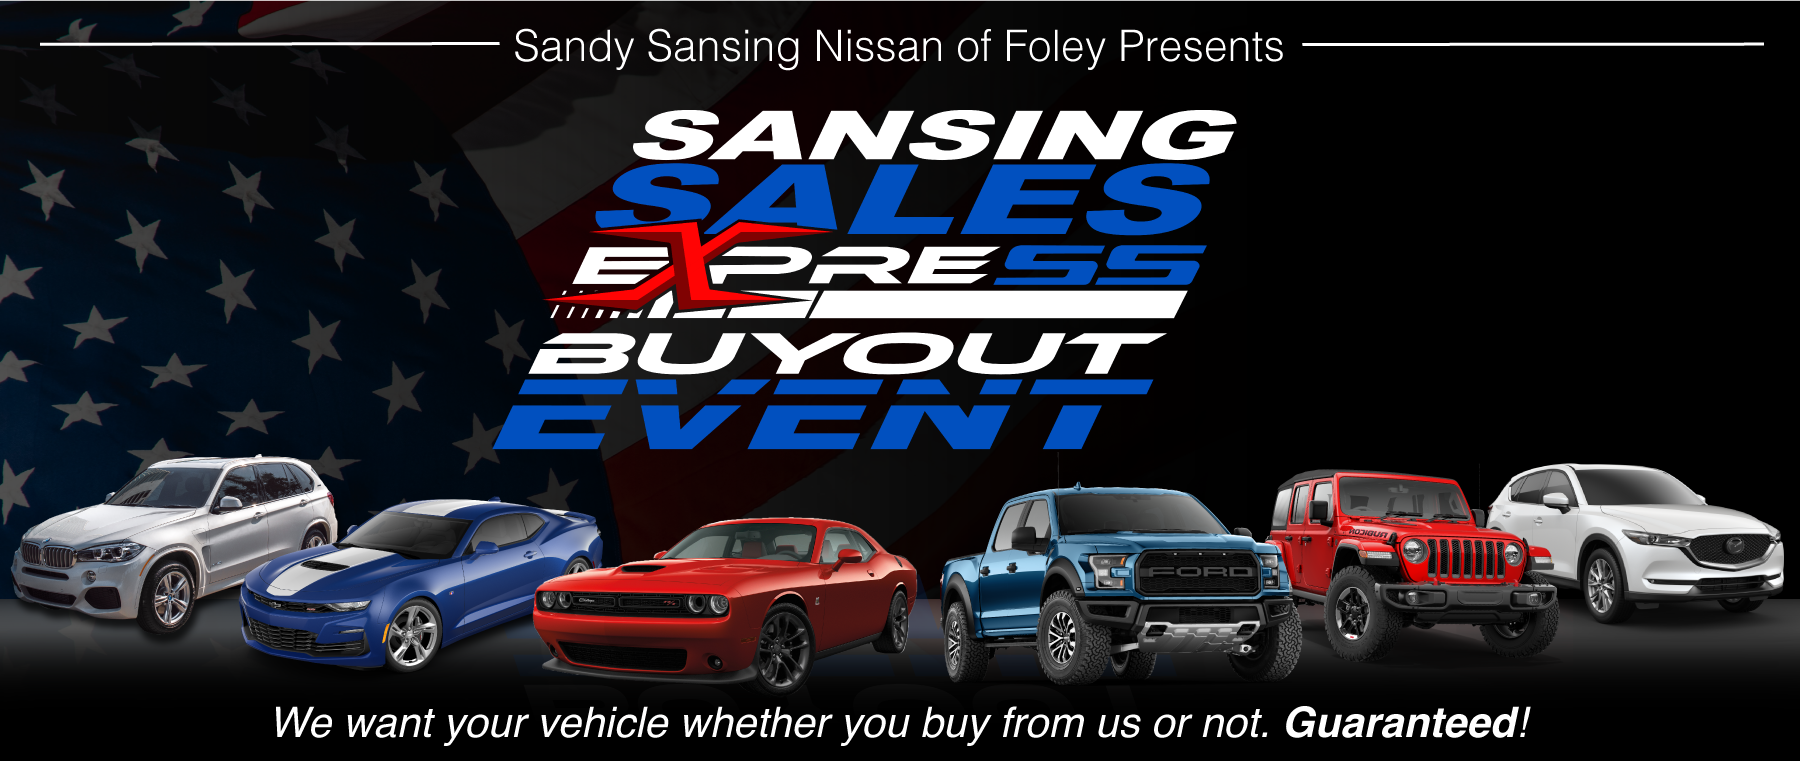 SSX-Website-Carousel-Banners-Dealerships_Website-Carousel-Graphic-NissanFoley